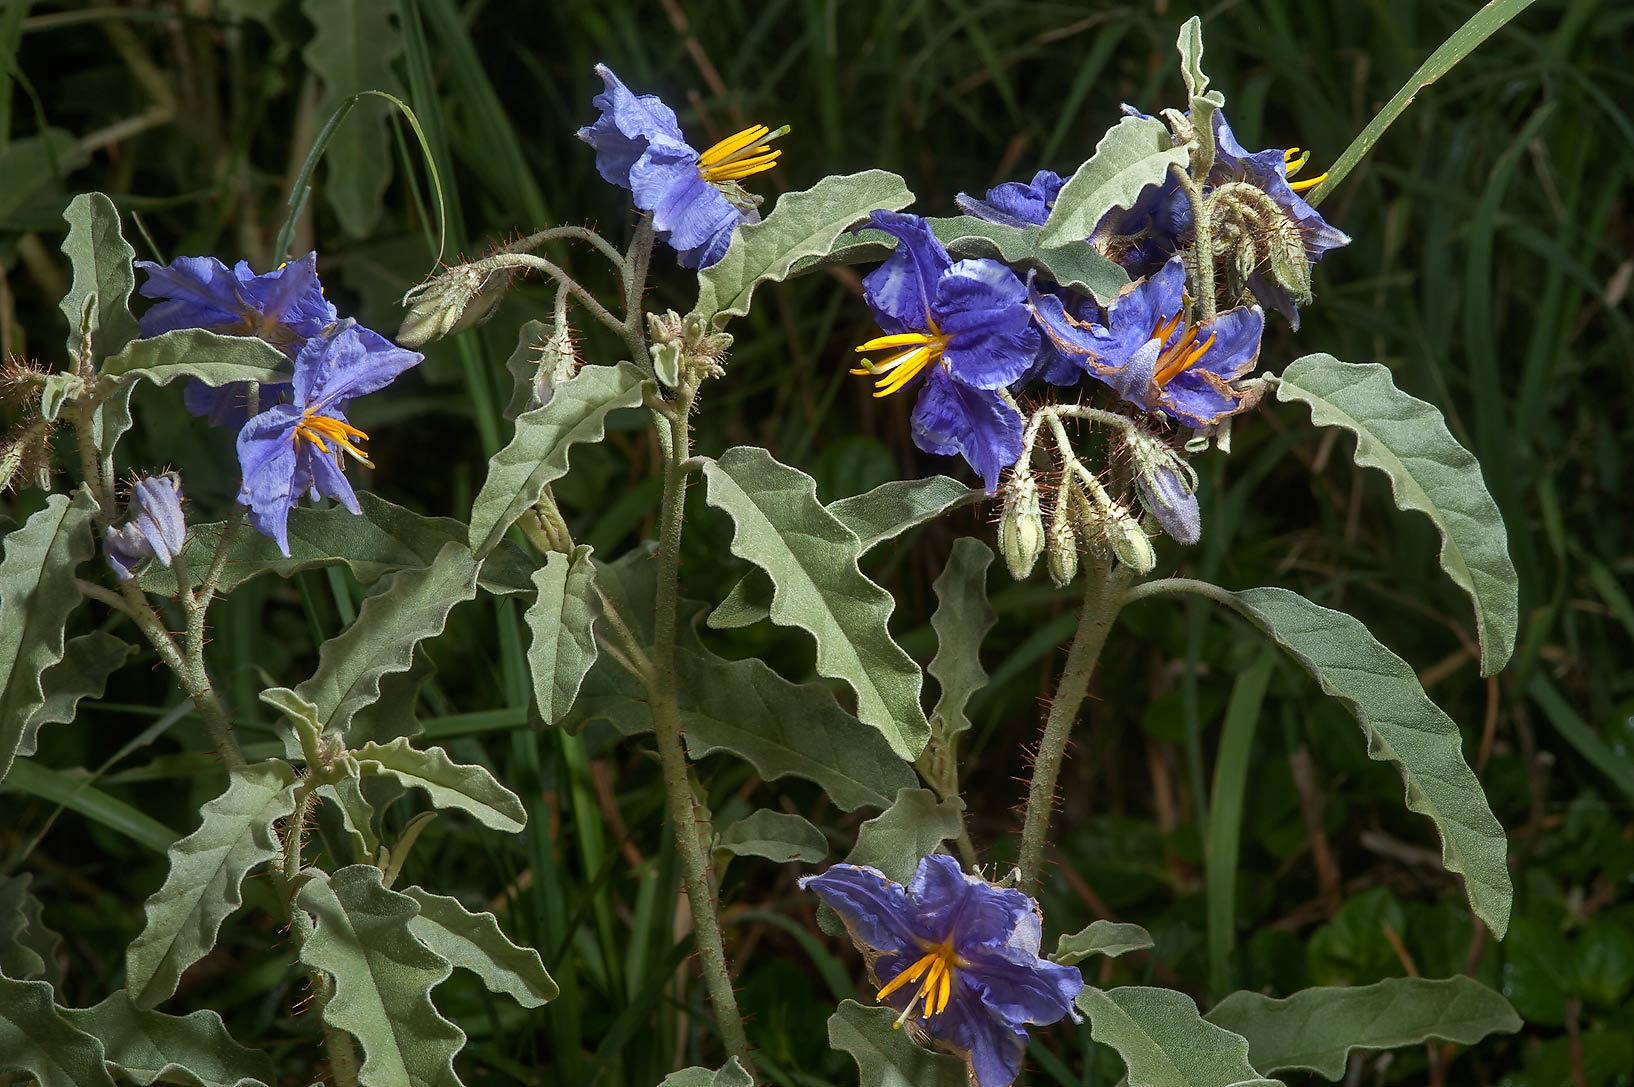 Blooming plants of silverleaf nightshade (Solanum...in Irkhaya (Irkaya) Farms. Qatar